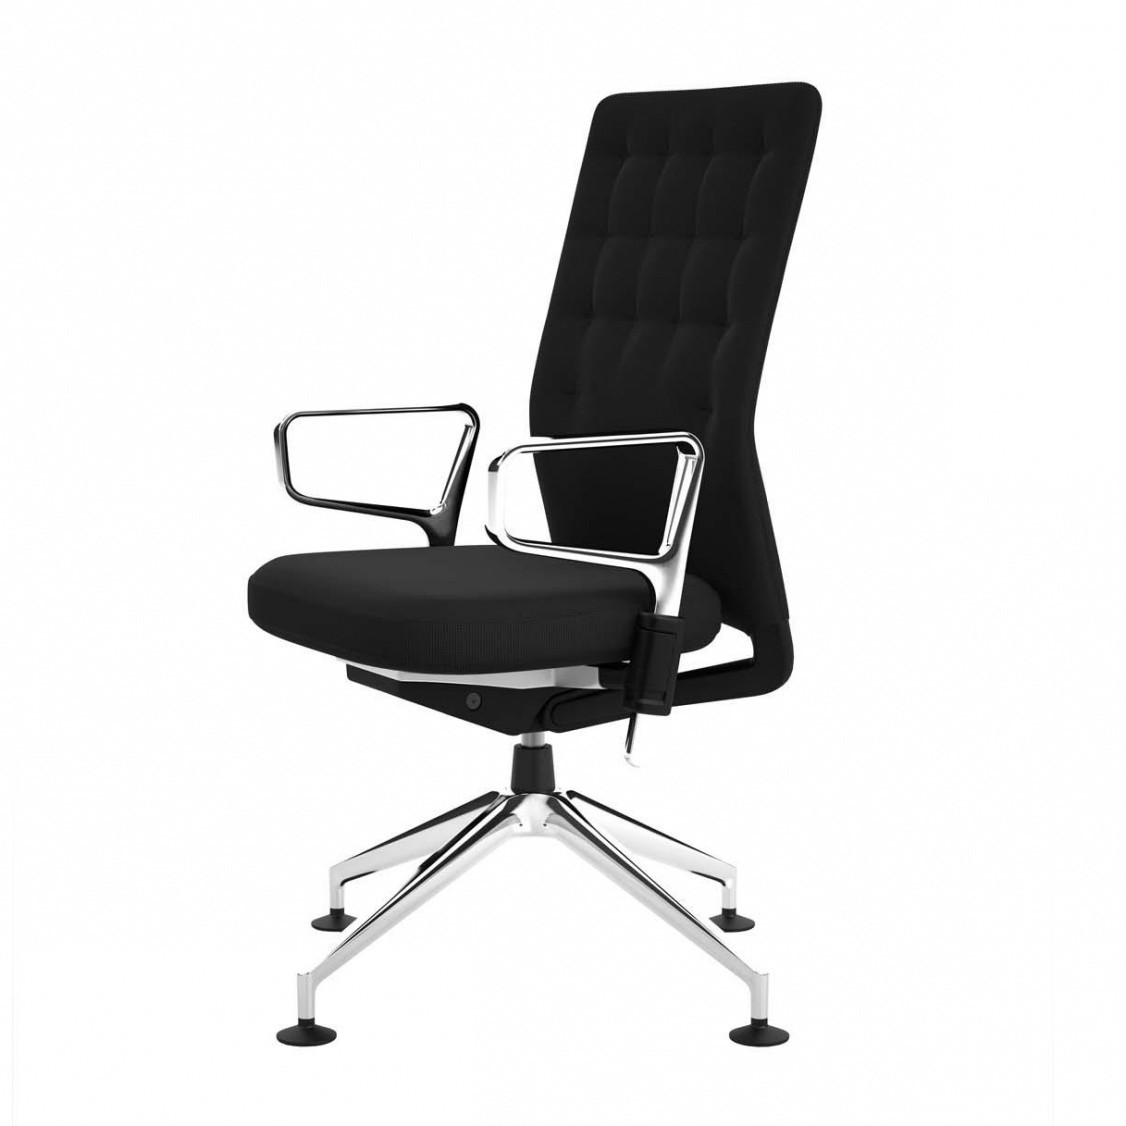 vitra id trim citterio office conference chair. Black Bedroom Furniture Sets. Home Design Ideas